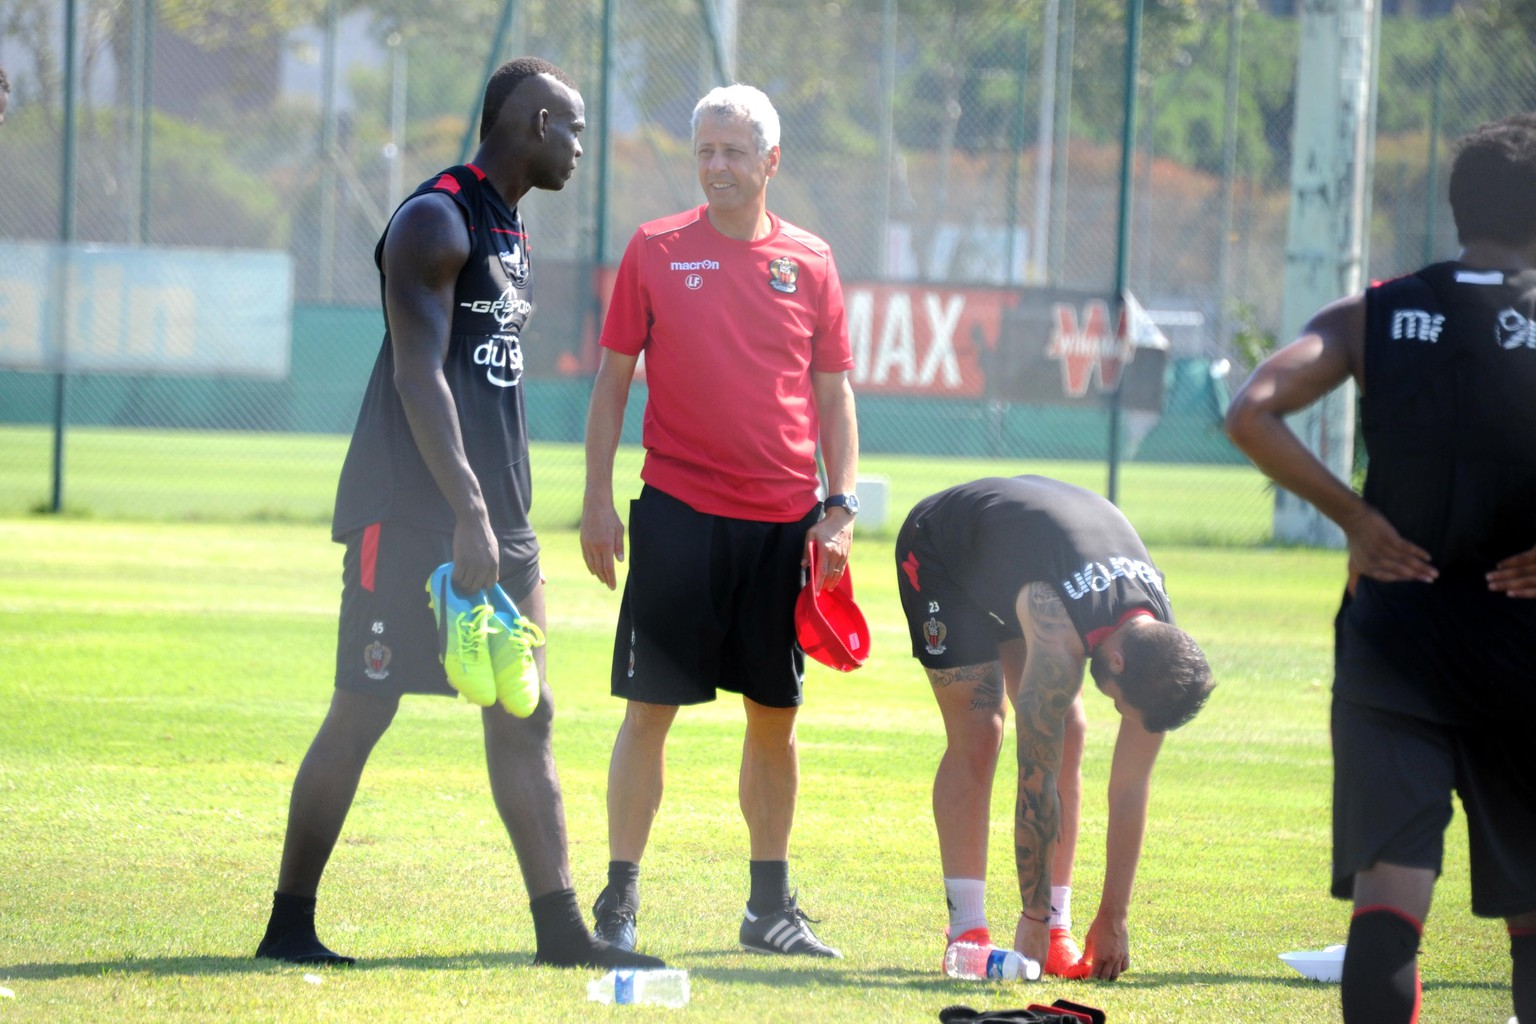 01.09.2016; Nizza; Fussball Ligue 1 - Training OGC Nizza;